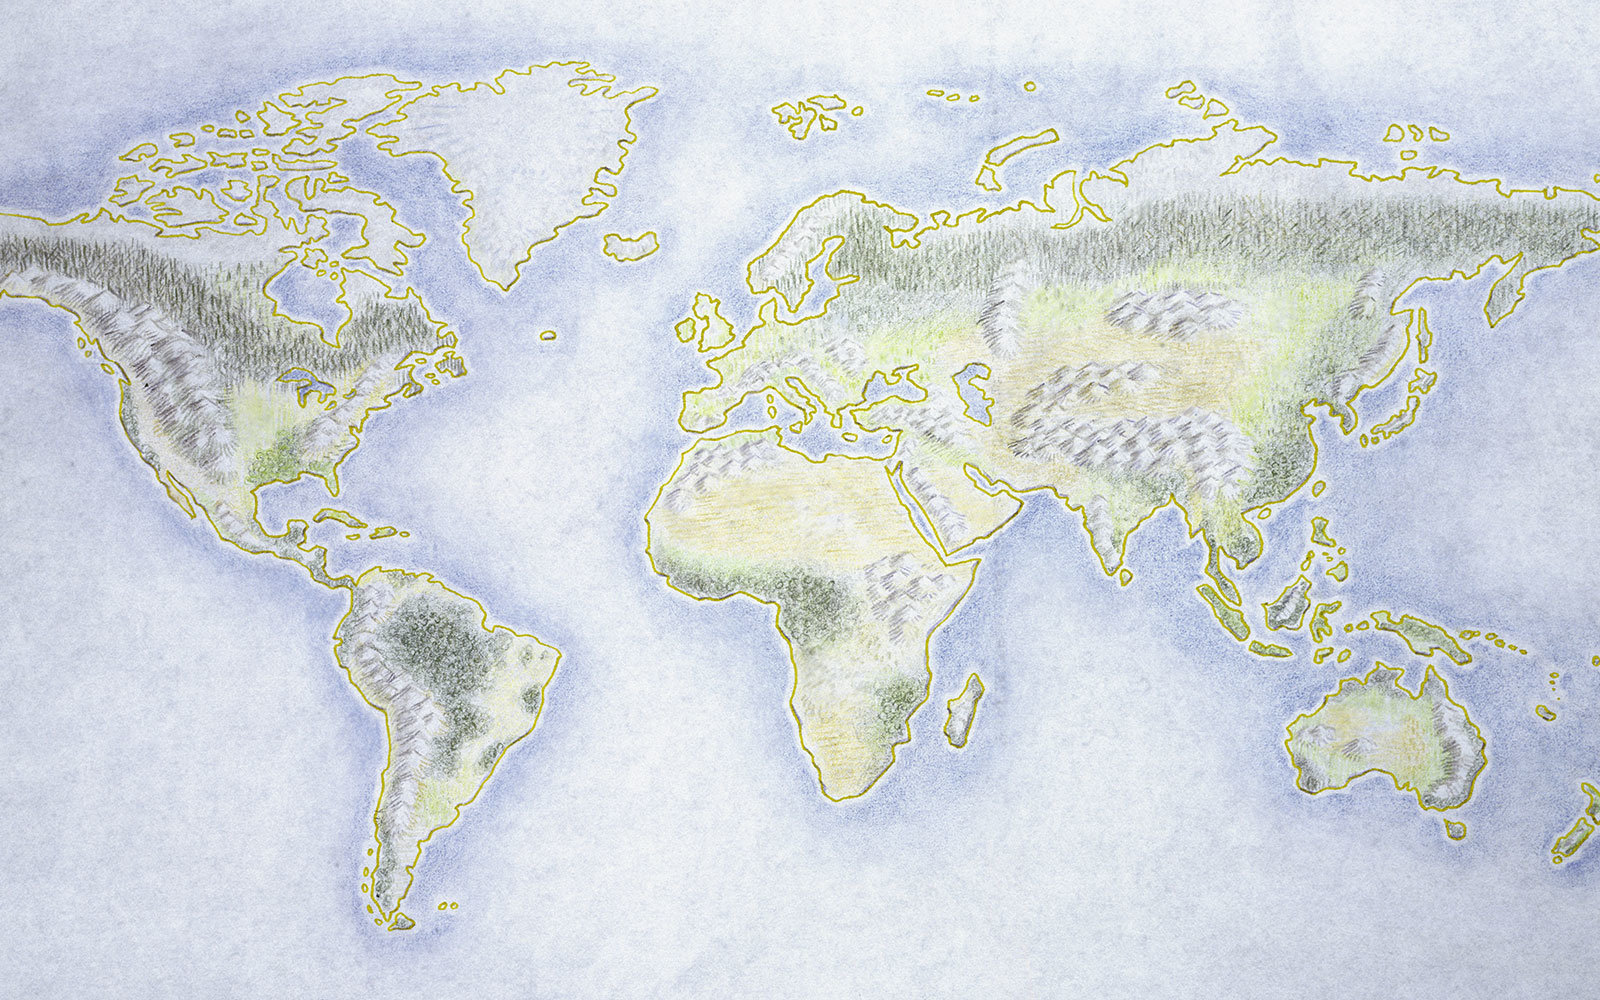 World map illustration